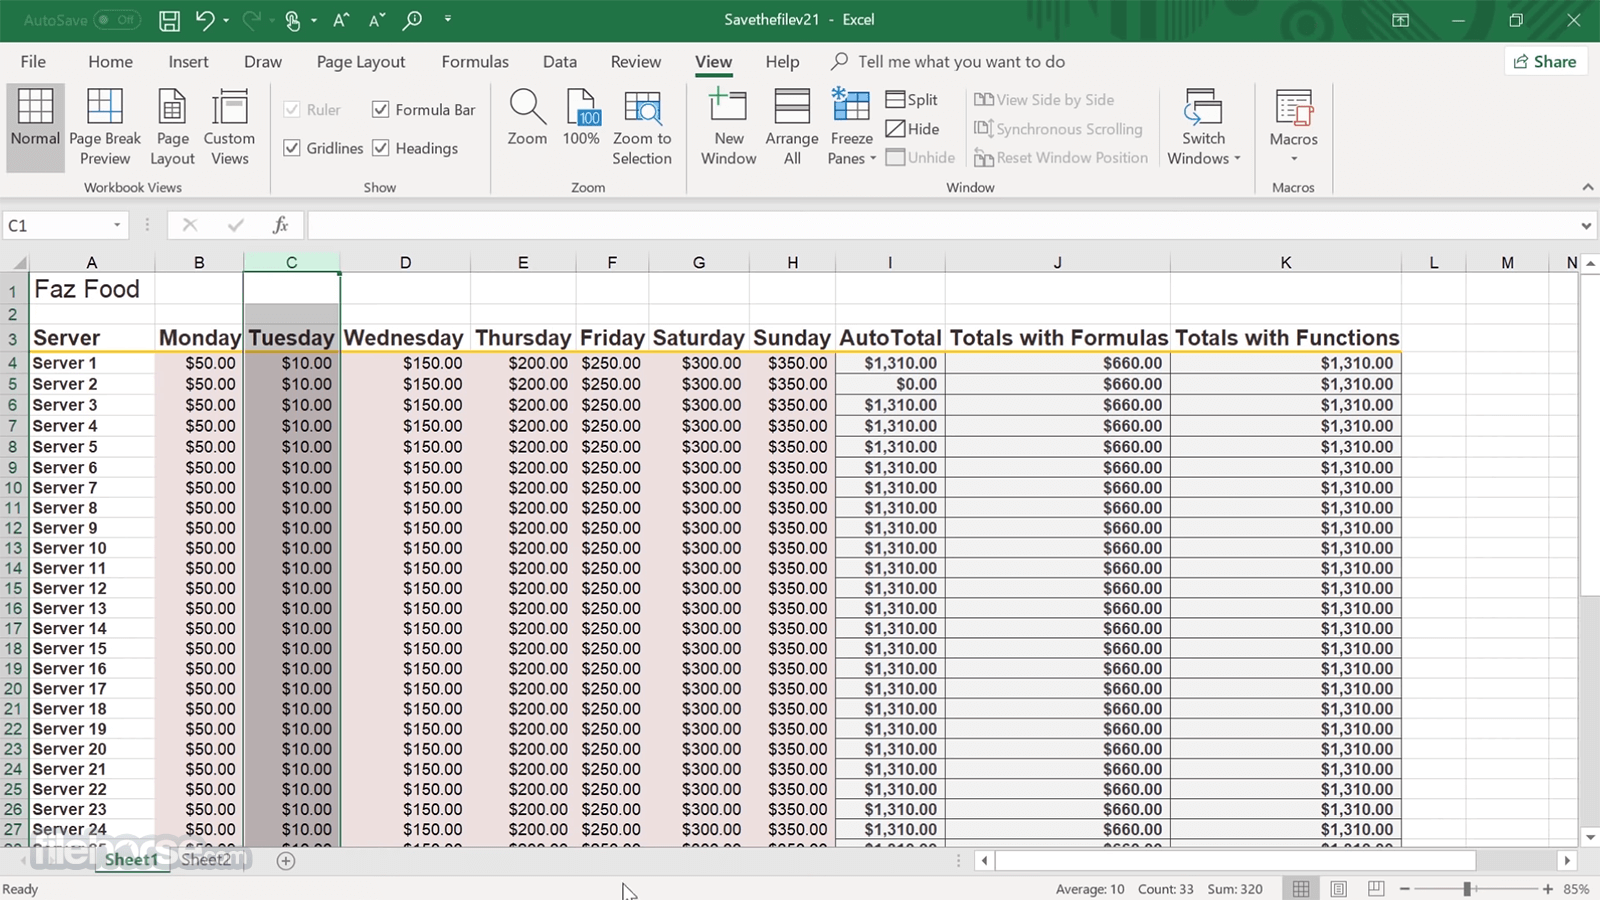 Microsoft Excel Download (2019 Latest) for Windows 10, 8, 7